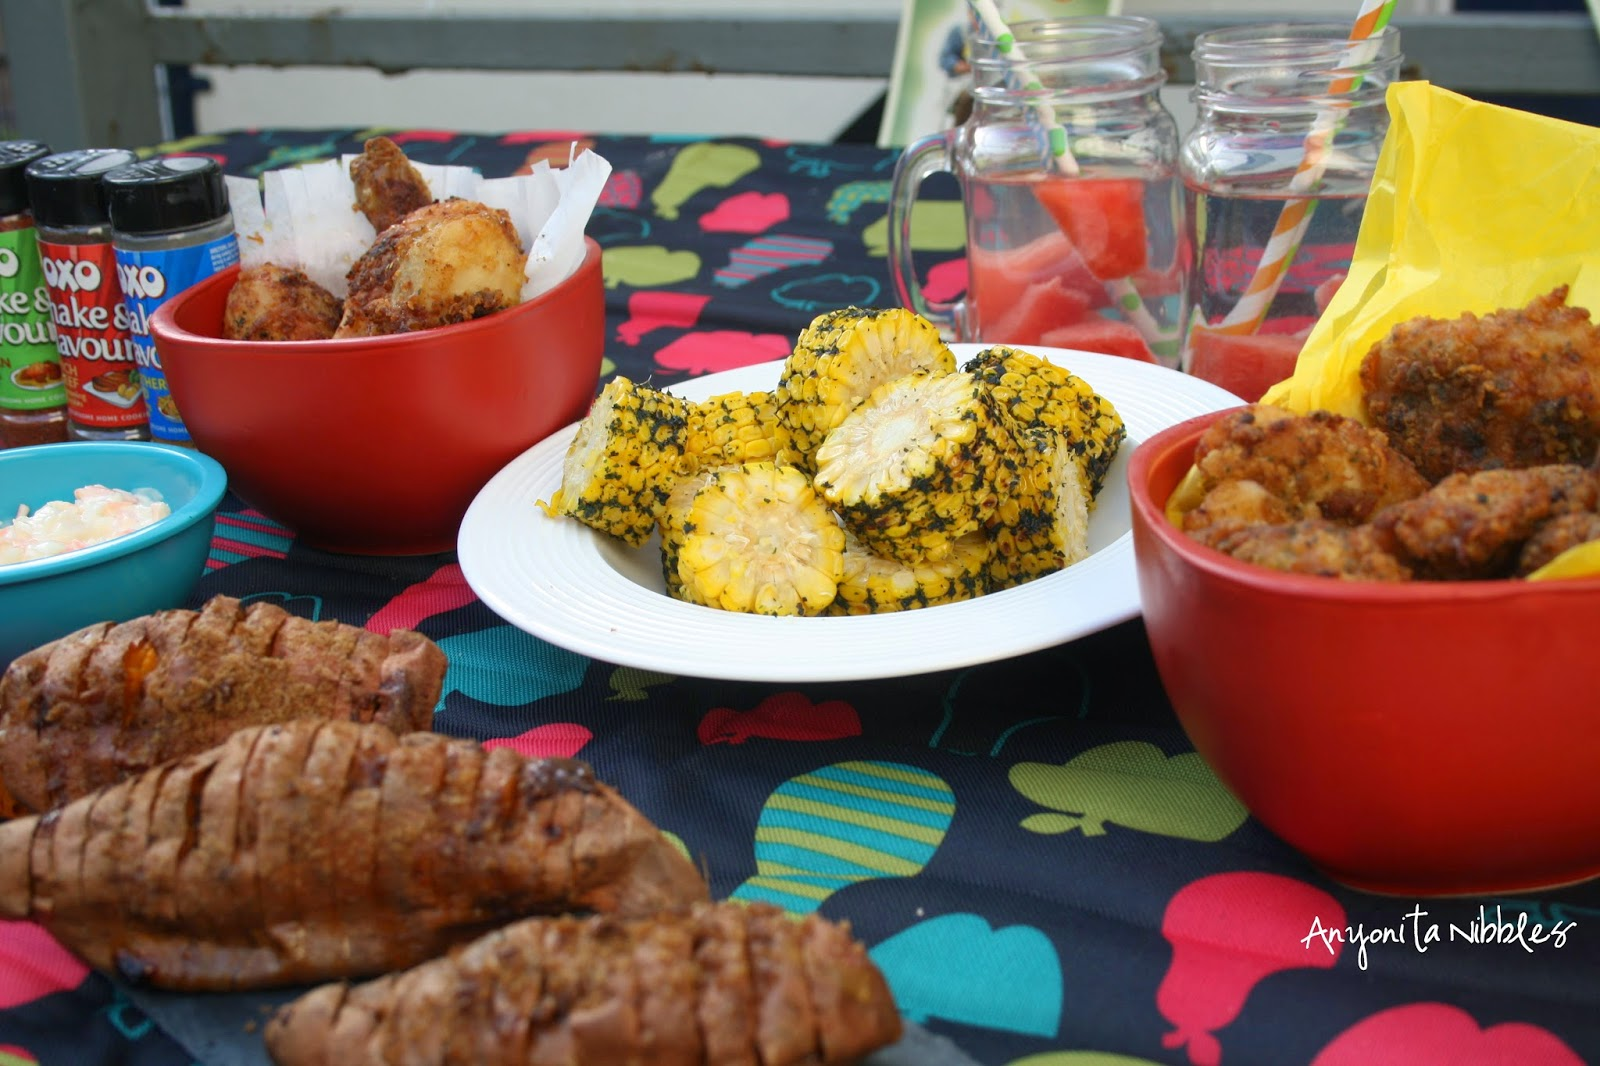 Chcken, Corn, Coleslaw, Sweet Potatoes and Watermelon Water by Anyonita Nibbles